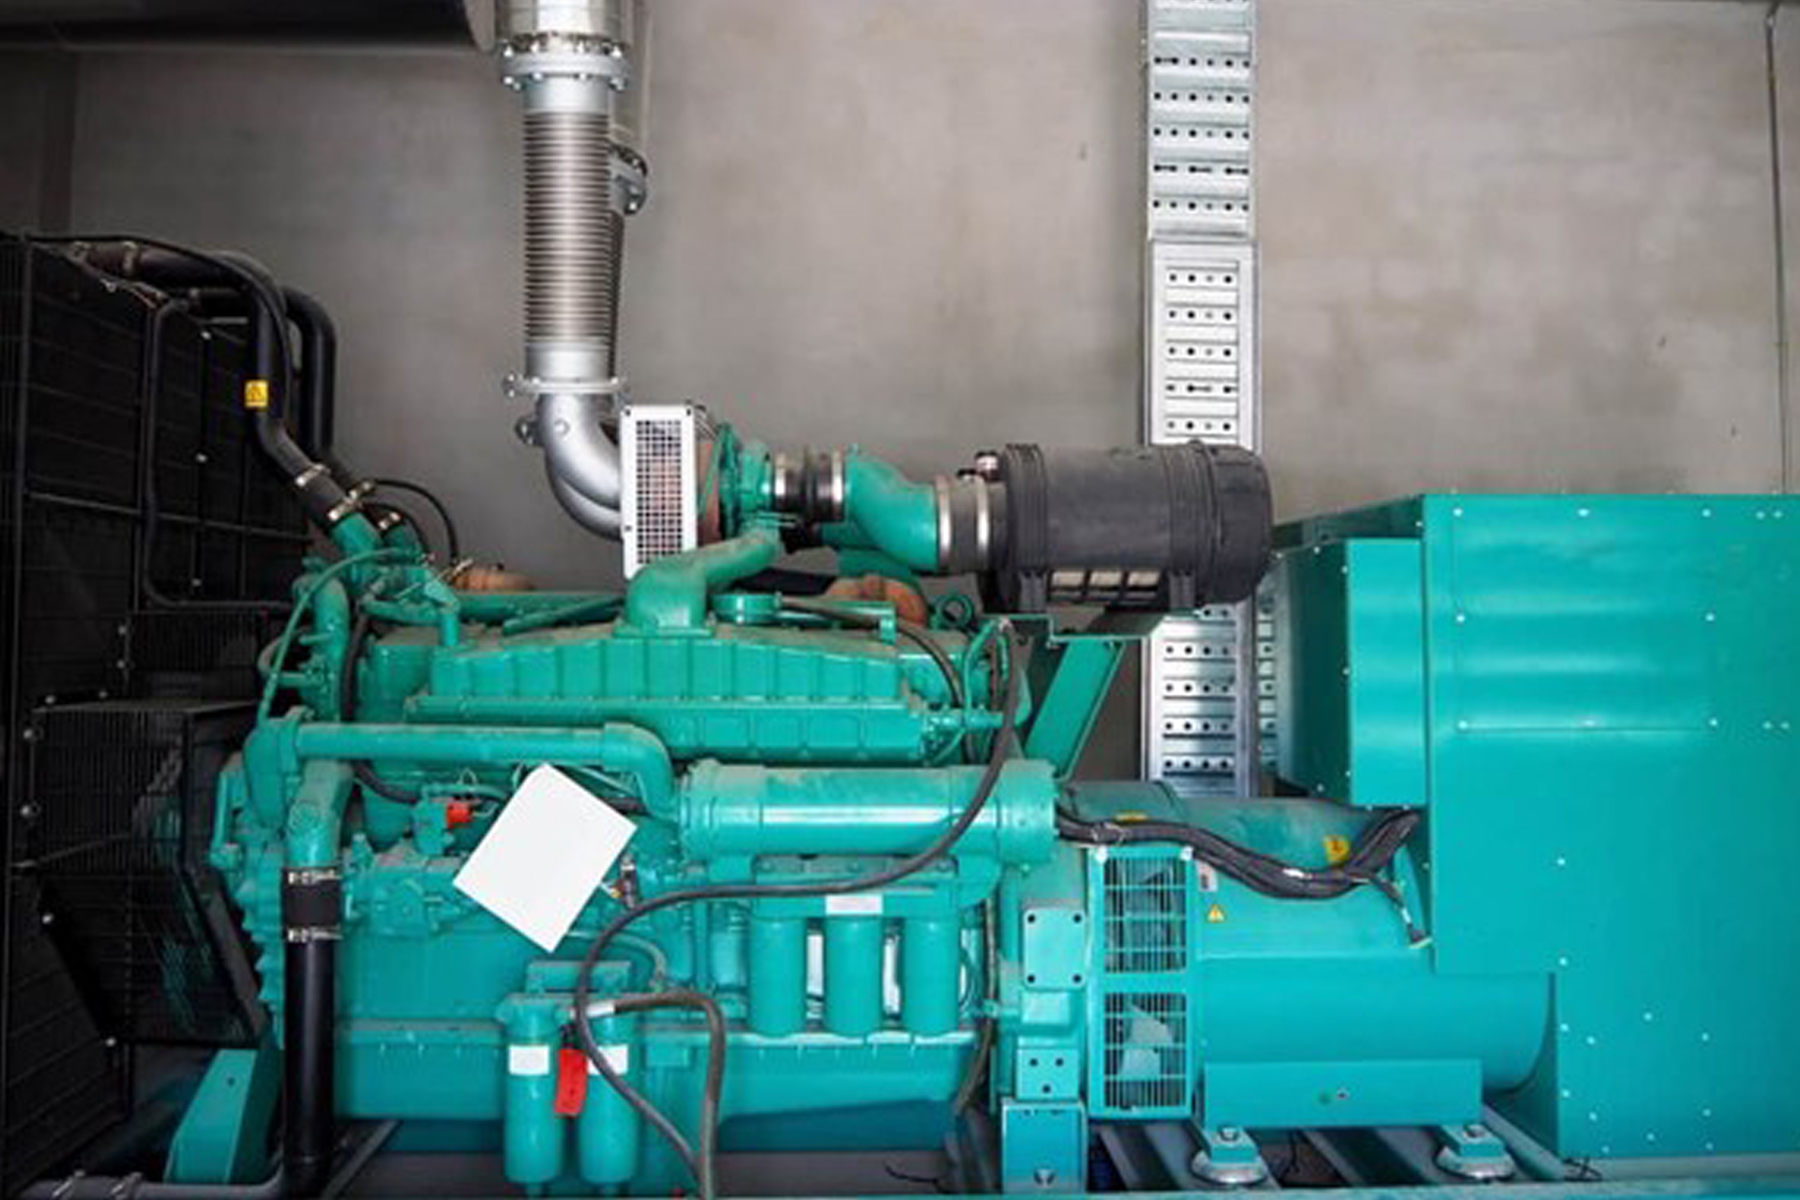 7 Different Types of Generators Diesel Generators The Inside of a Diesel Generator · Natural Gas Generators Outdoor Unit of a Generator · Gasoline Generators